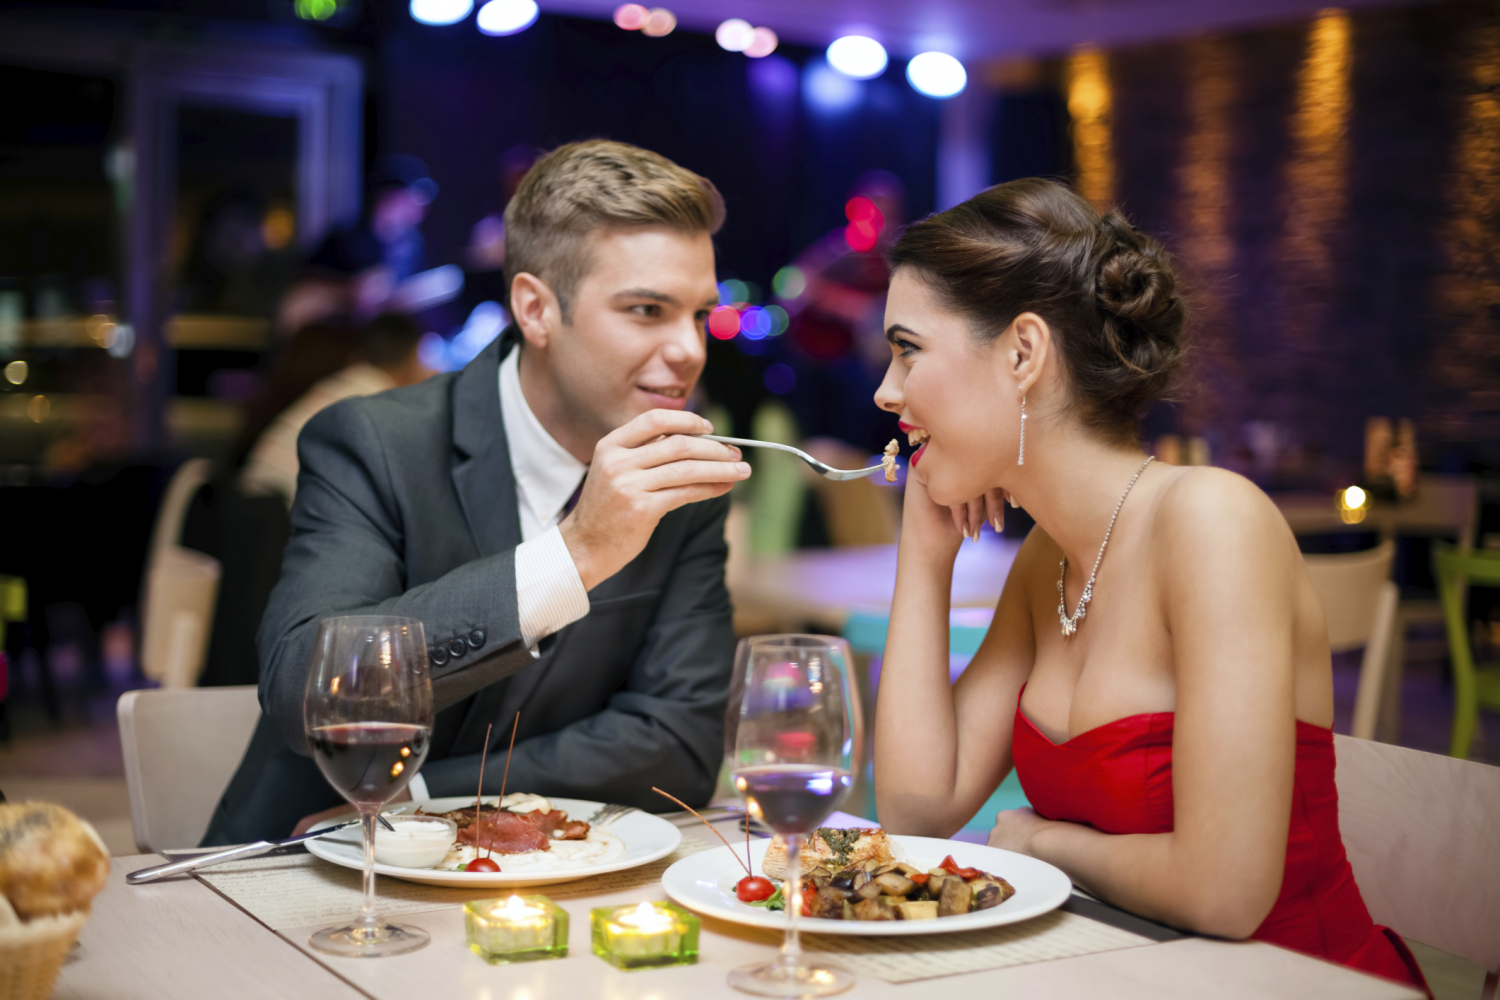 A man and a woman sitting at a table eating food